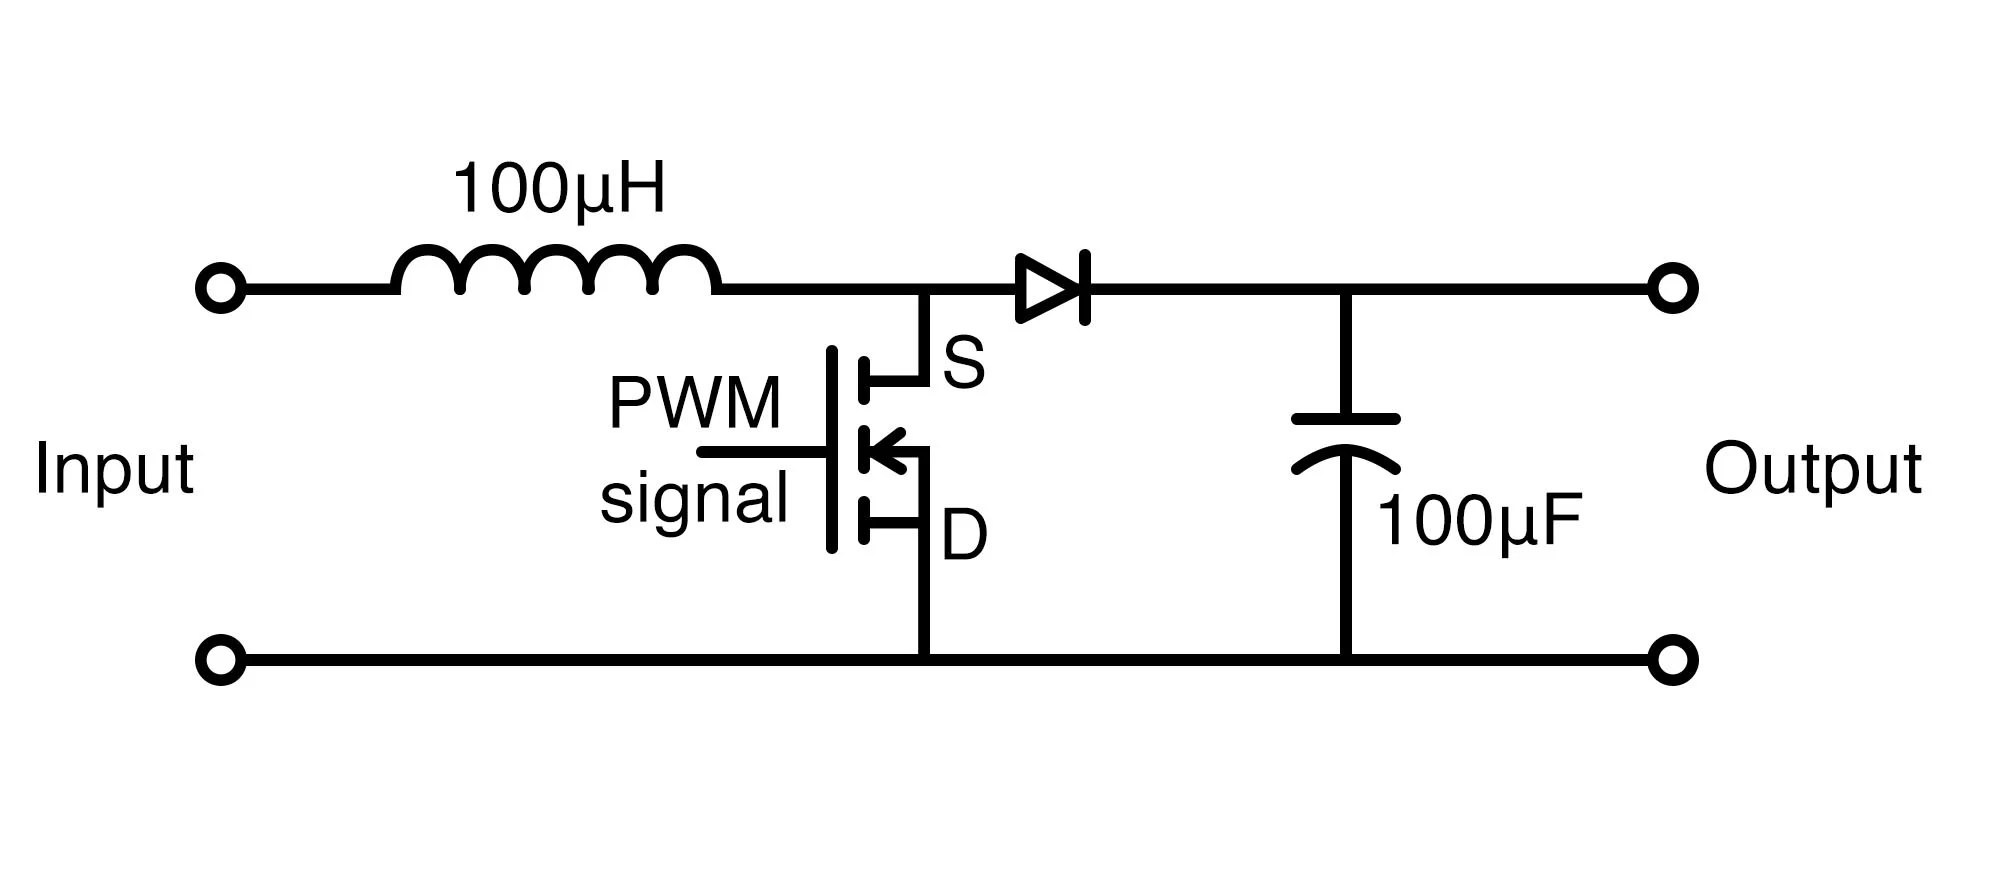 How to Build an Arduino-based Buck/Boost Converter